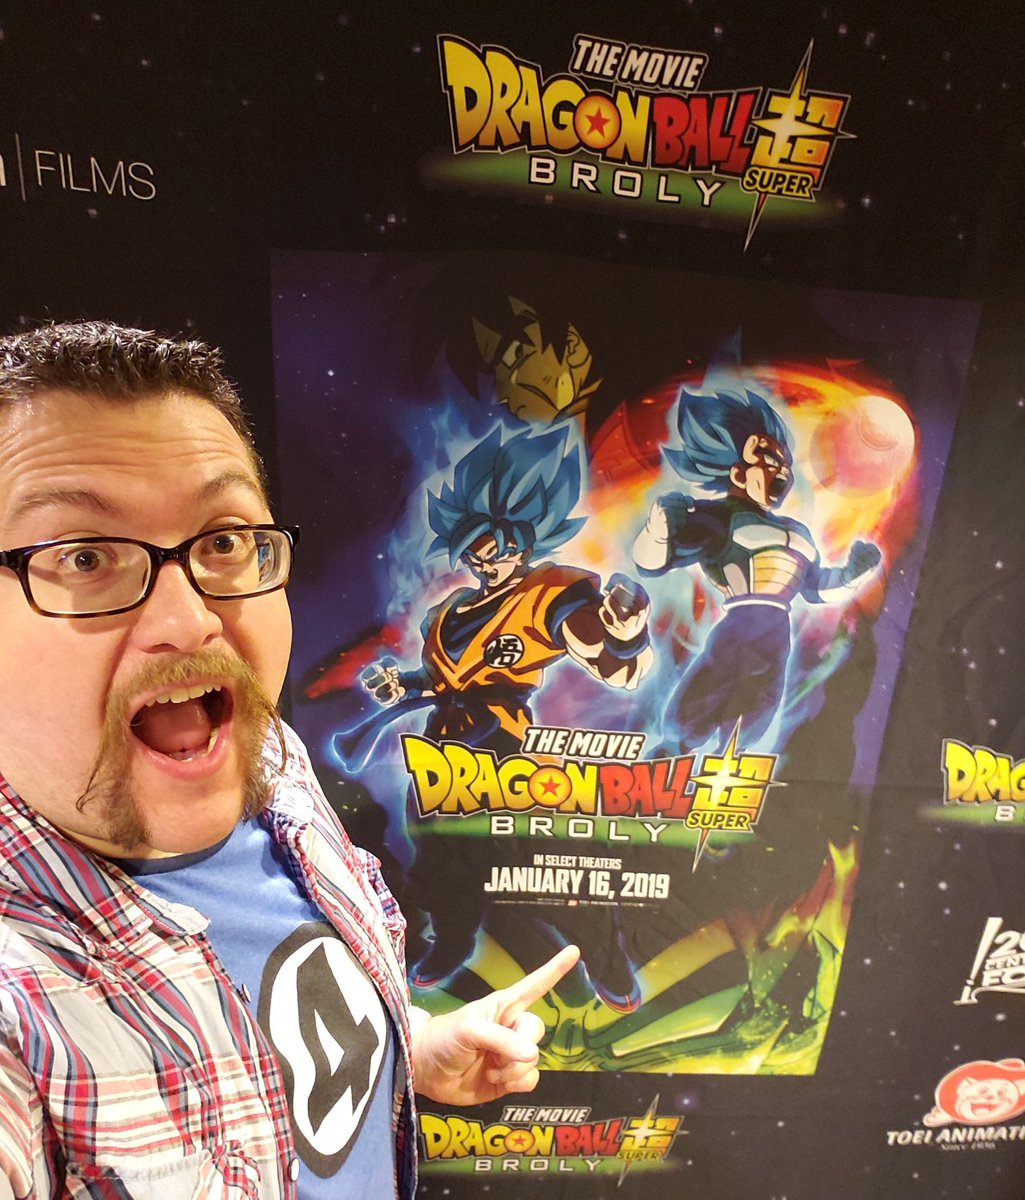 Thanks @FUNimation & @SONICBOOMB0X for the #DBSuperBroly NYC screening!